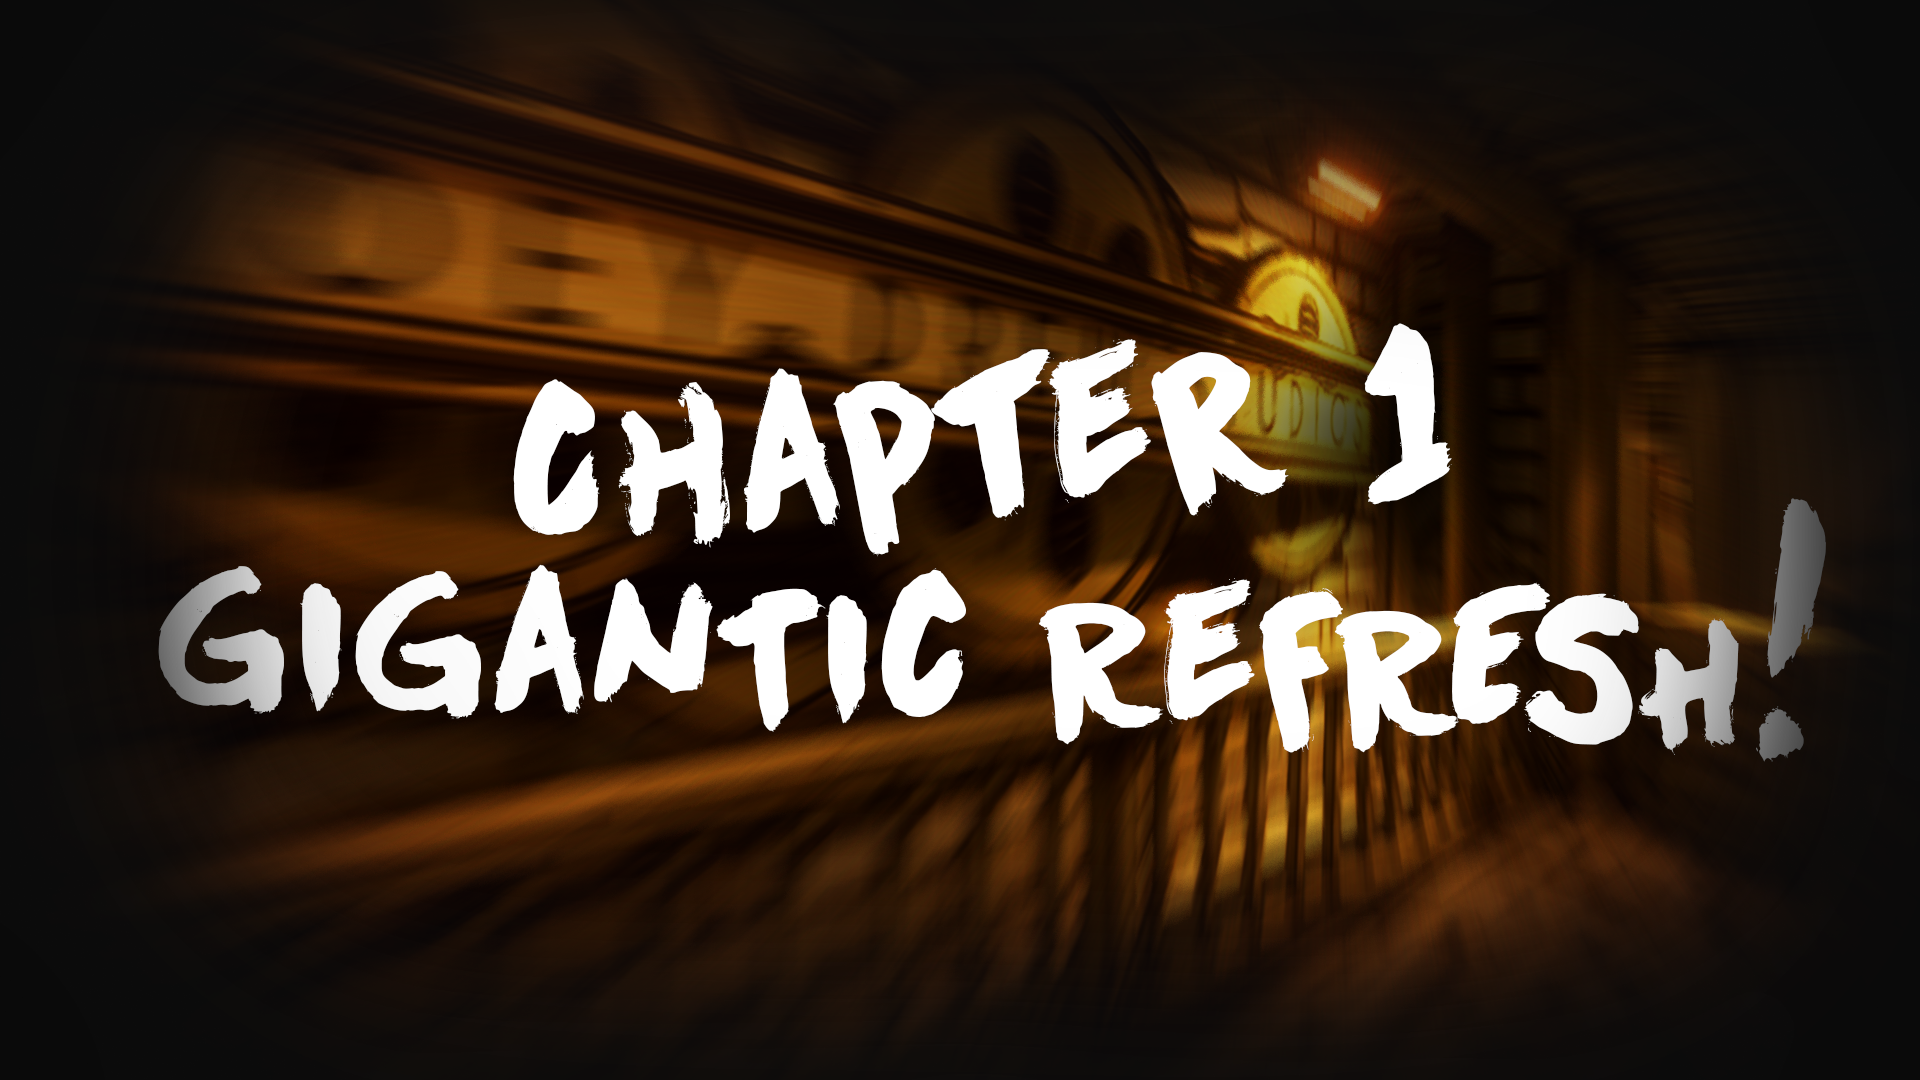 Chapter 1 is getting a GIGANTIC REMASTER THIS MONTH!!